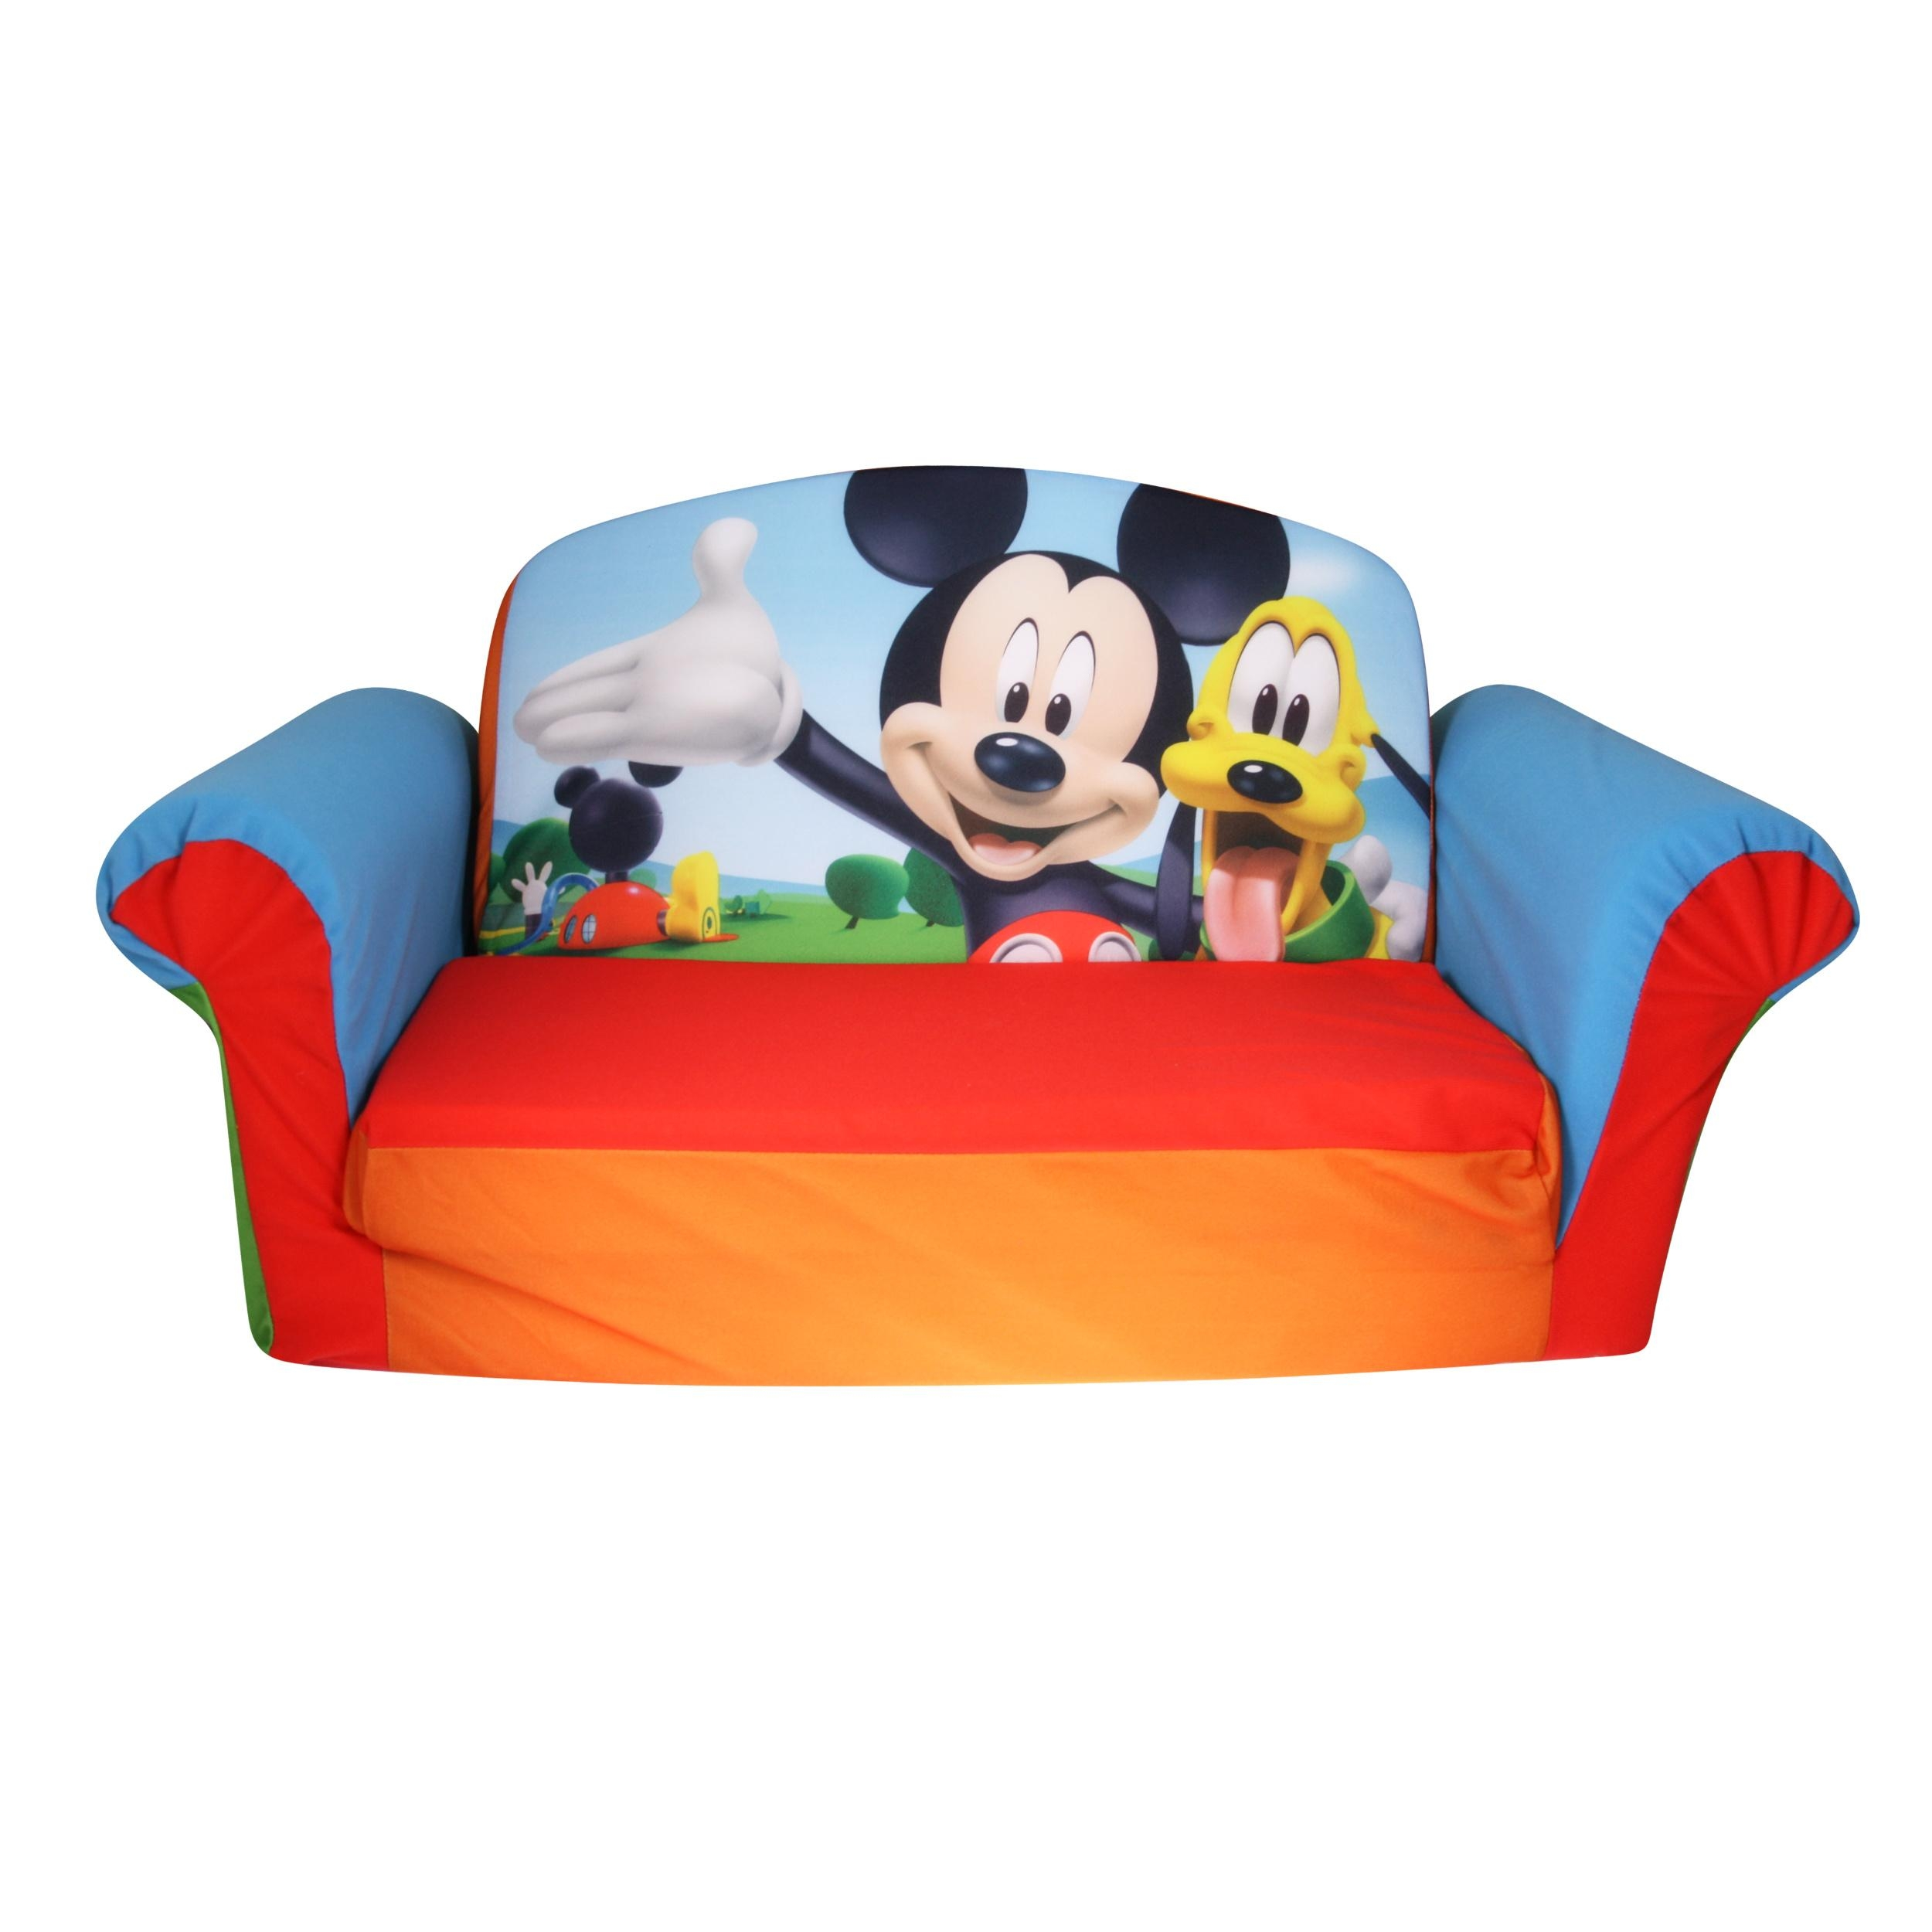 Marshmallow Furniture, Children's 2 In 1 Flip Open Foam Sofa Throughout Mickey Fold Out Couches (View 2 of 20)